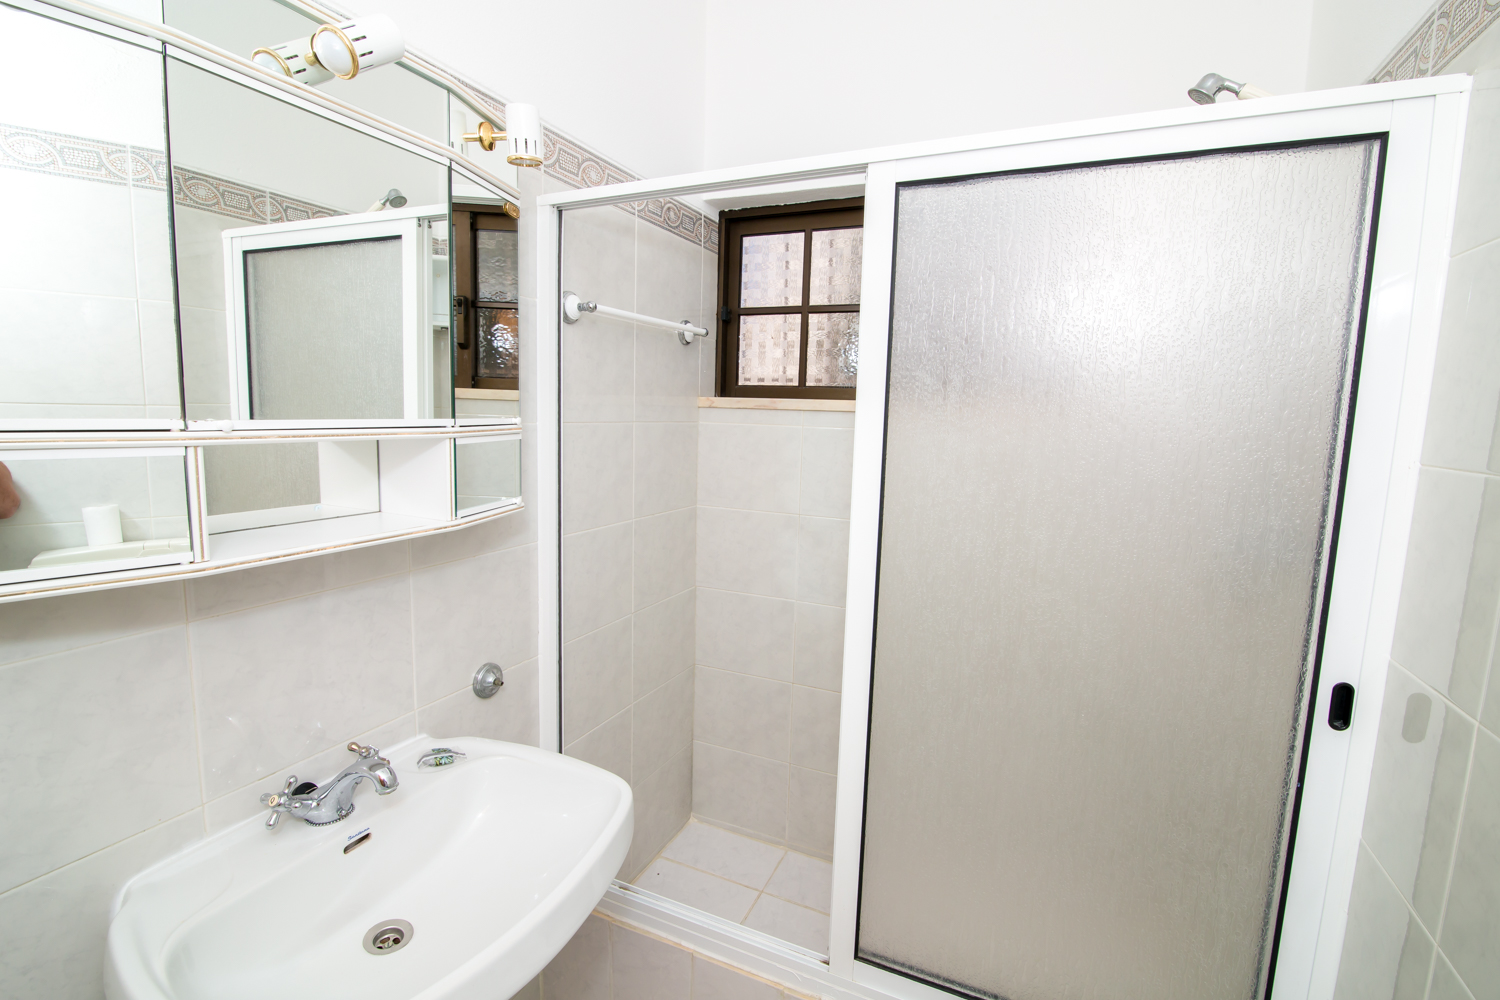 2nd floor bathroom with walk in shower.